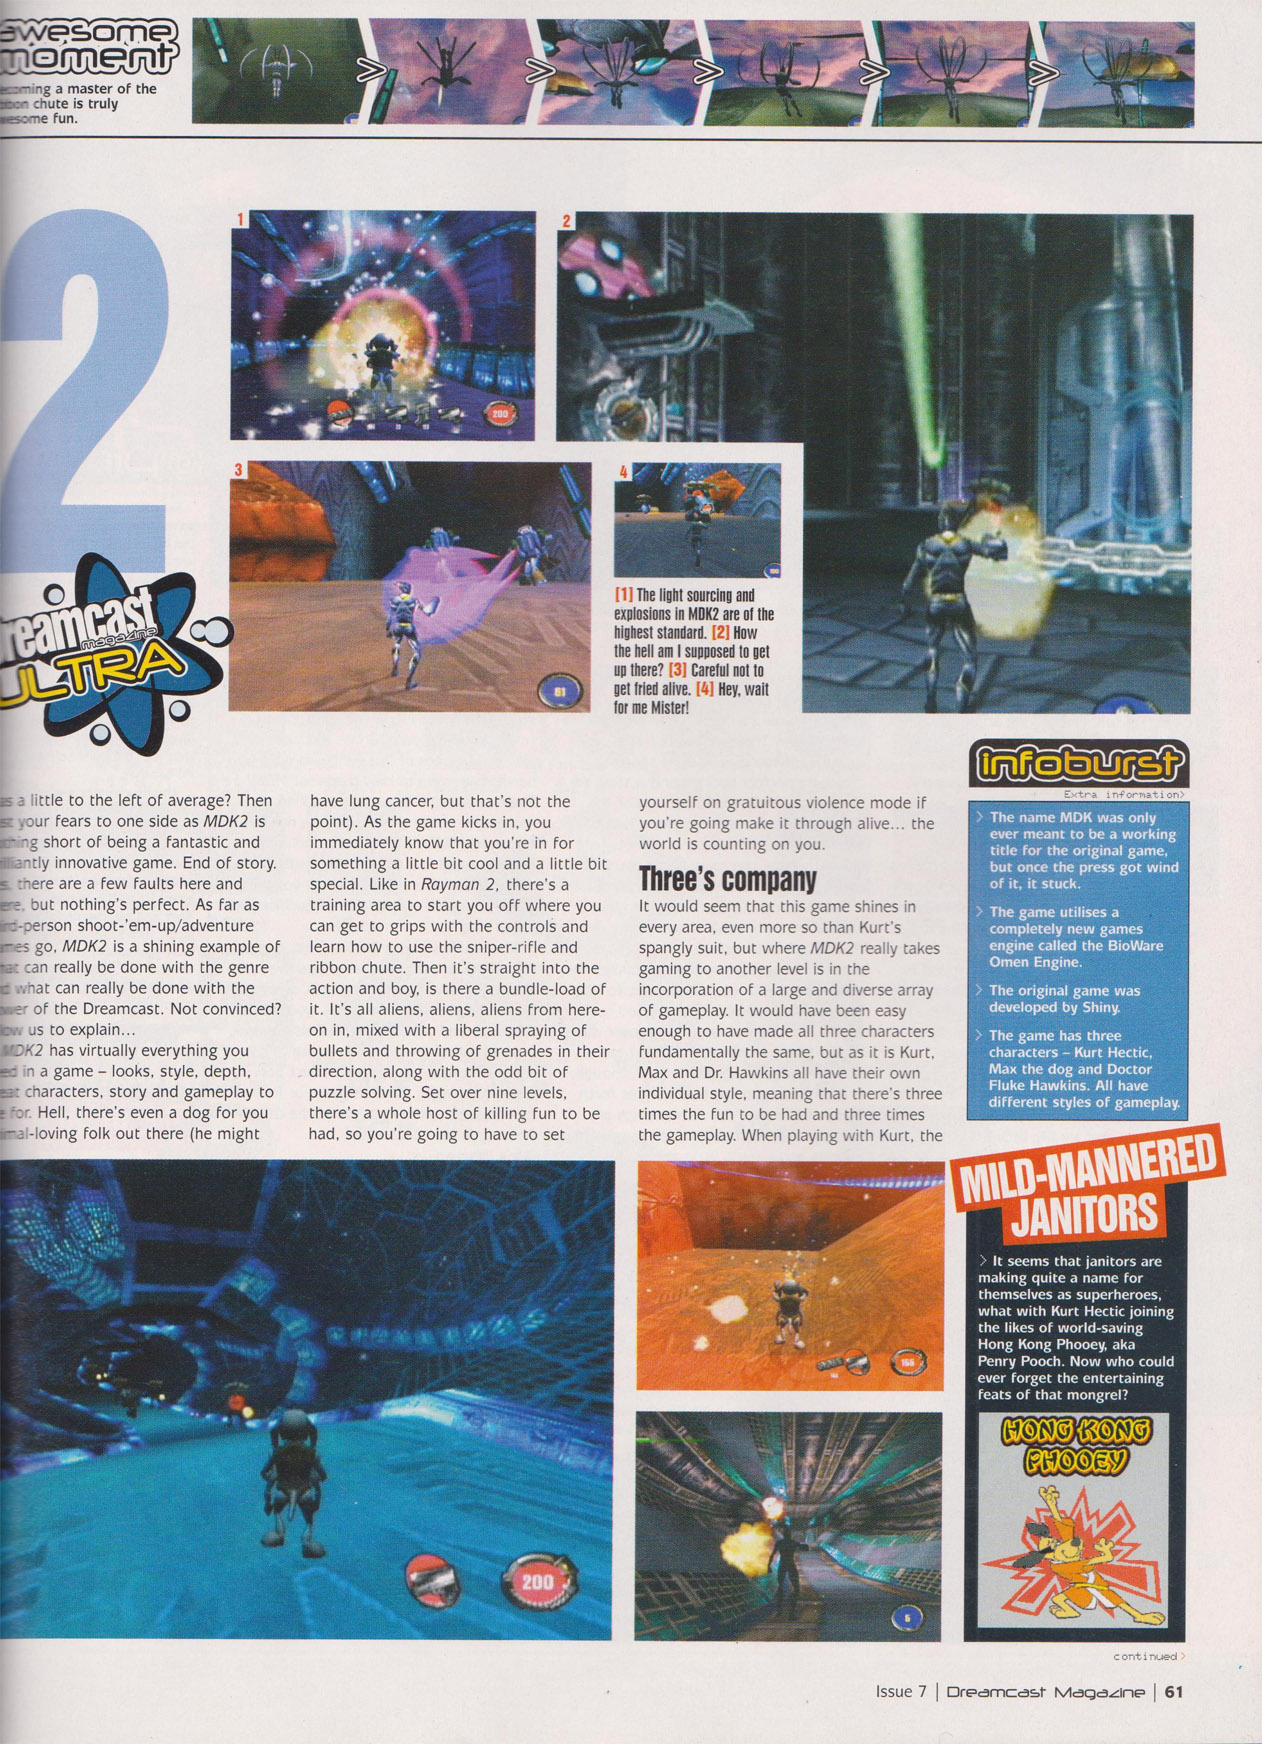 SEGA-Related Magazine Features « SEGADriven